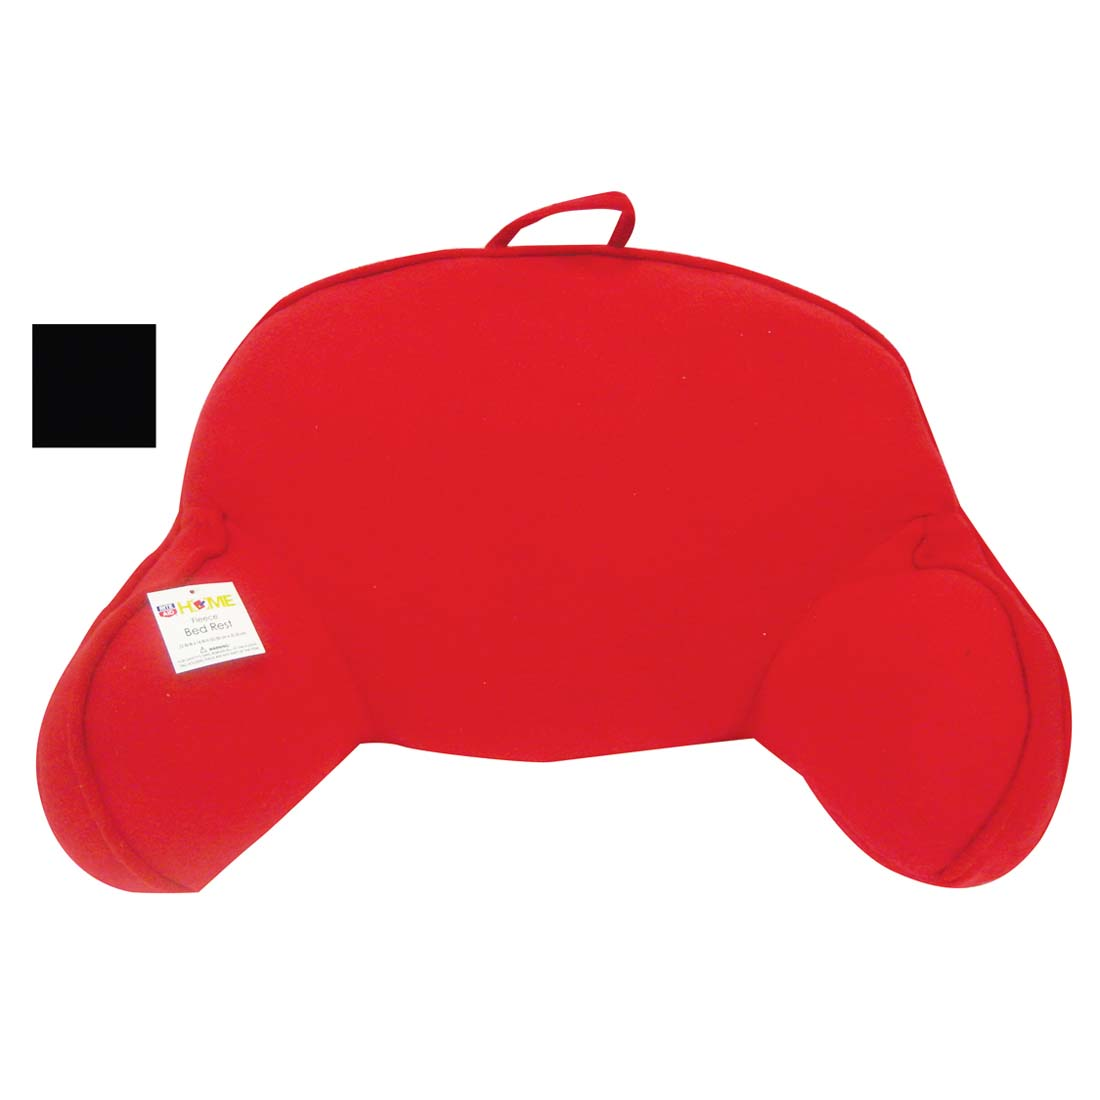 View FLEECE BED PILLOW RED/BLACK